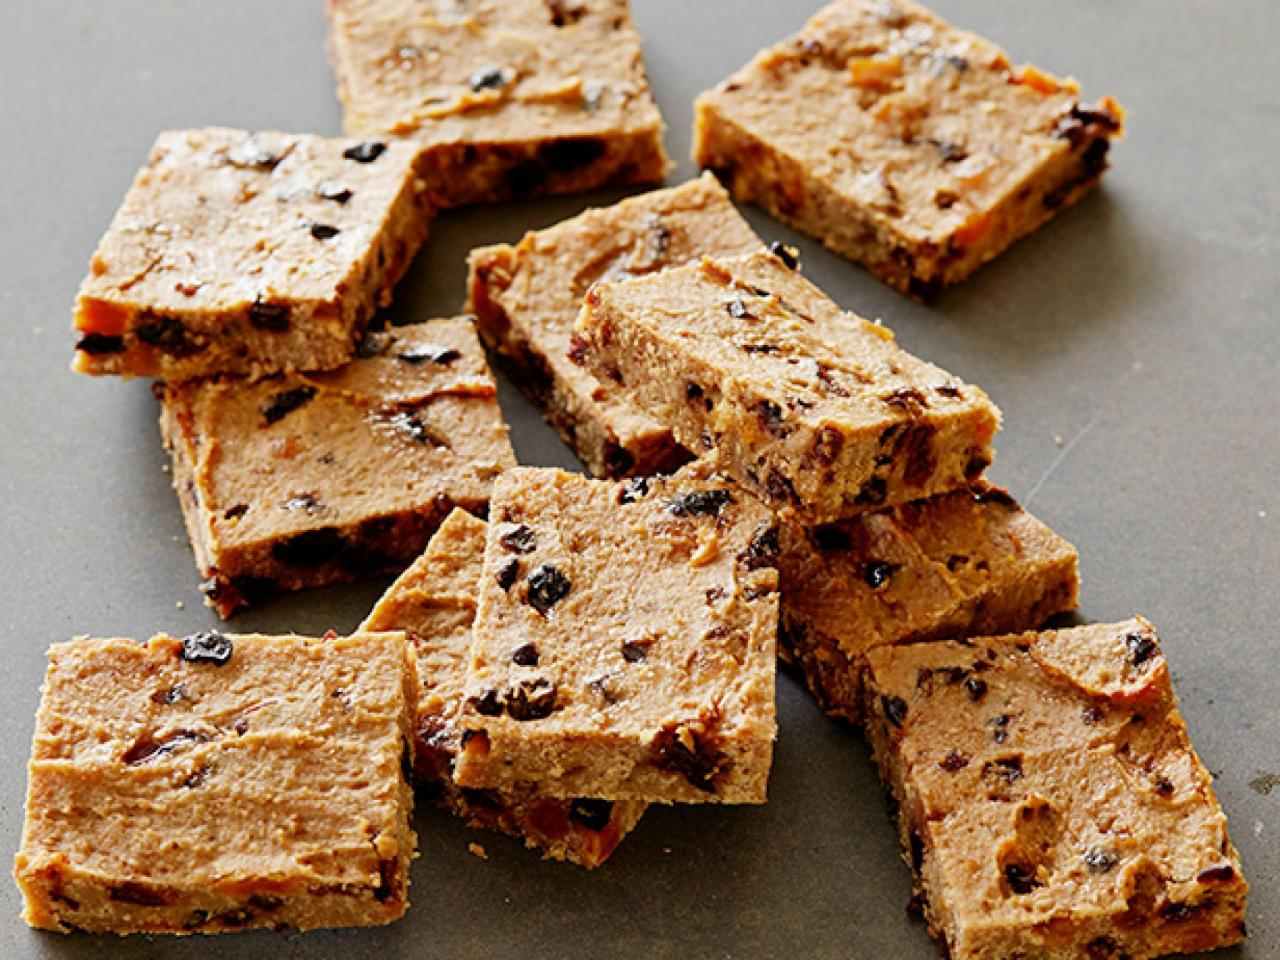 11-healthy-diet-foods-that-can-actually-make-you-fat-protein-bars